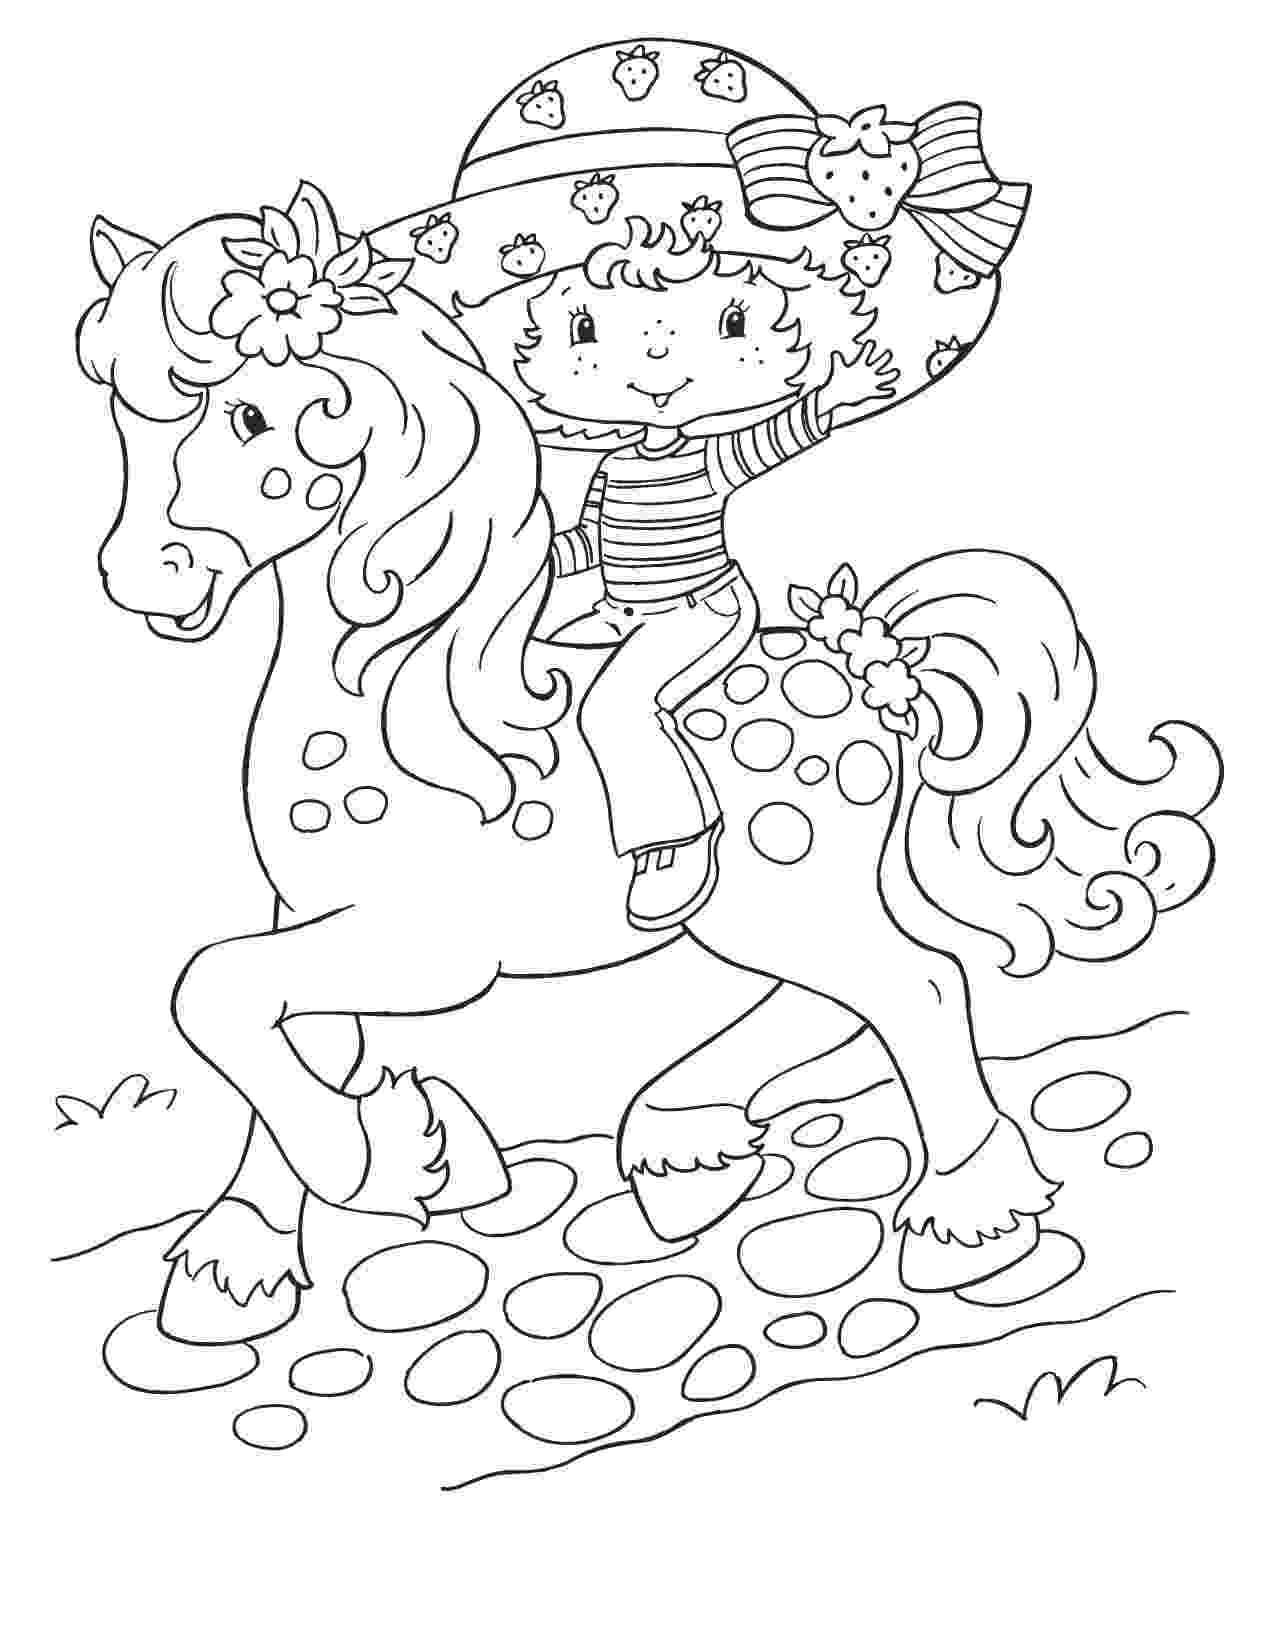 strawberry shortcake coloring pages free strawberry shortcake backgrounds wallpapertag shortcake coloring strawberry free pages